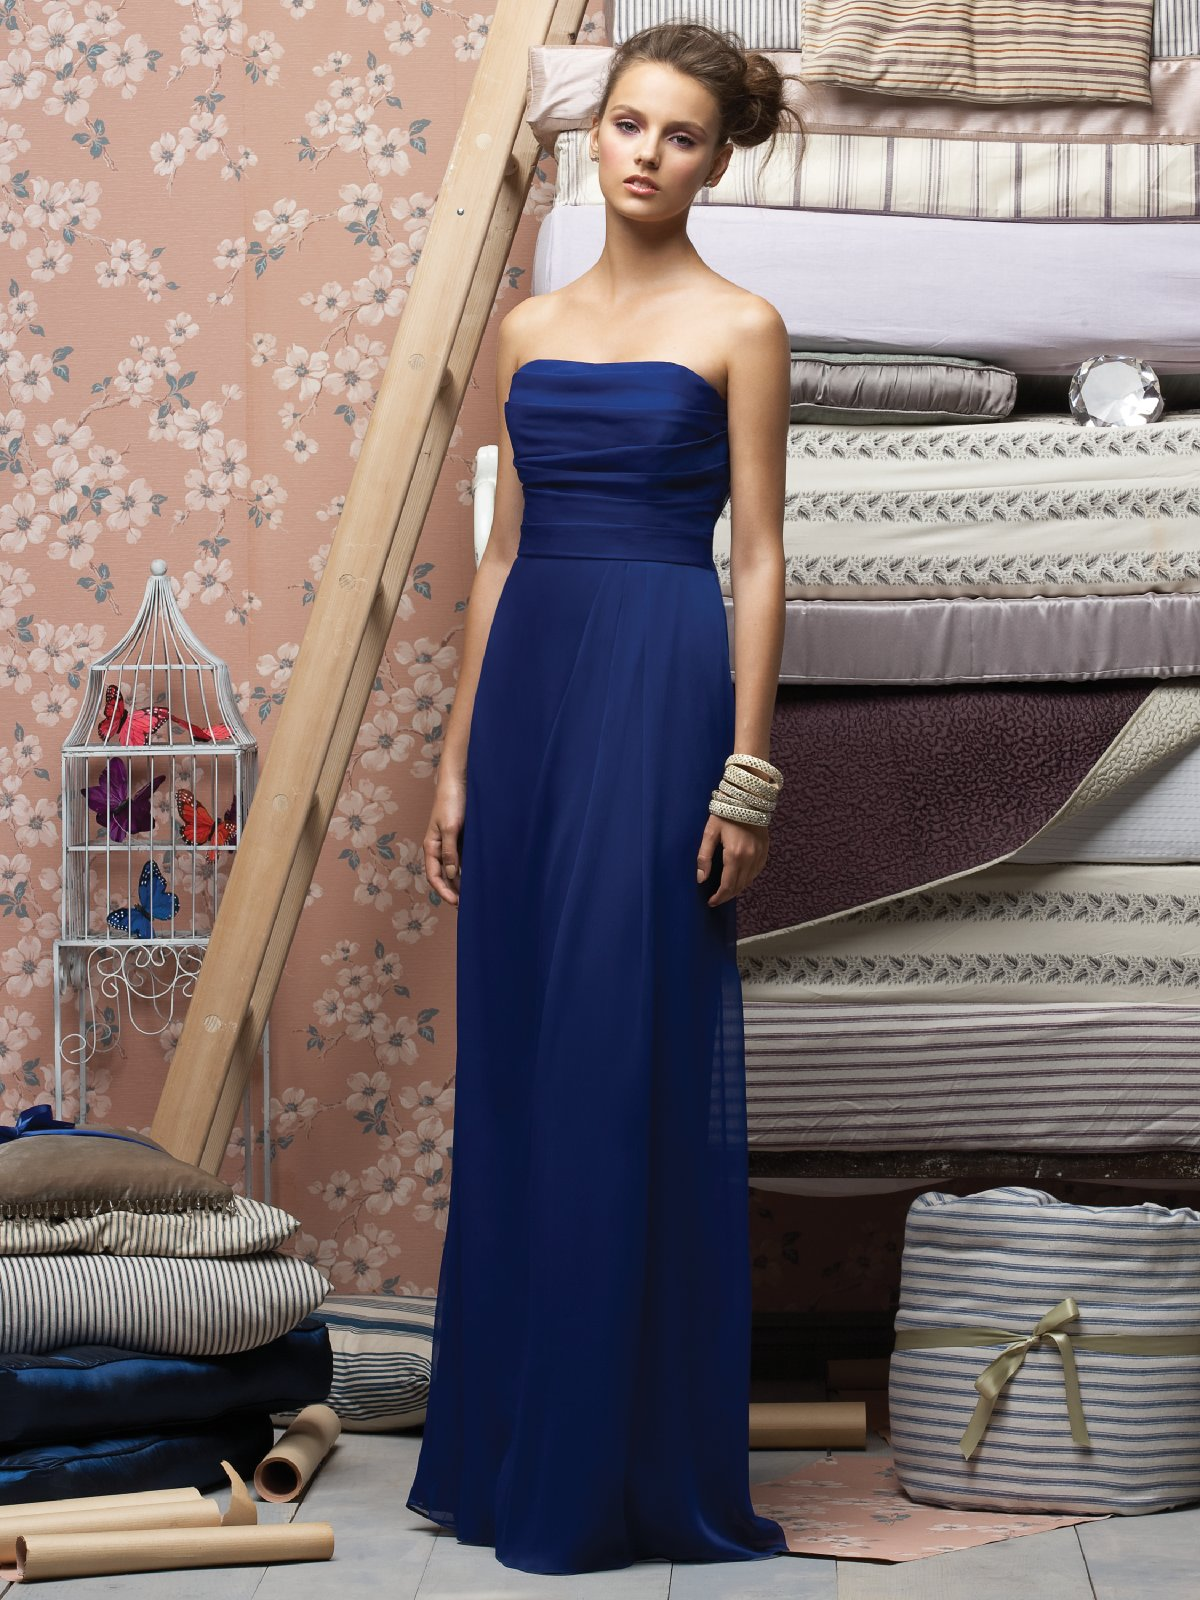 Best Selling Royal Blue Column Strapless Floor Length Ruffled Chiffon Prom Dresses